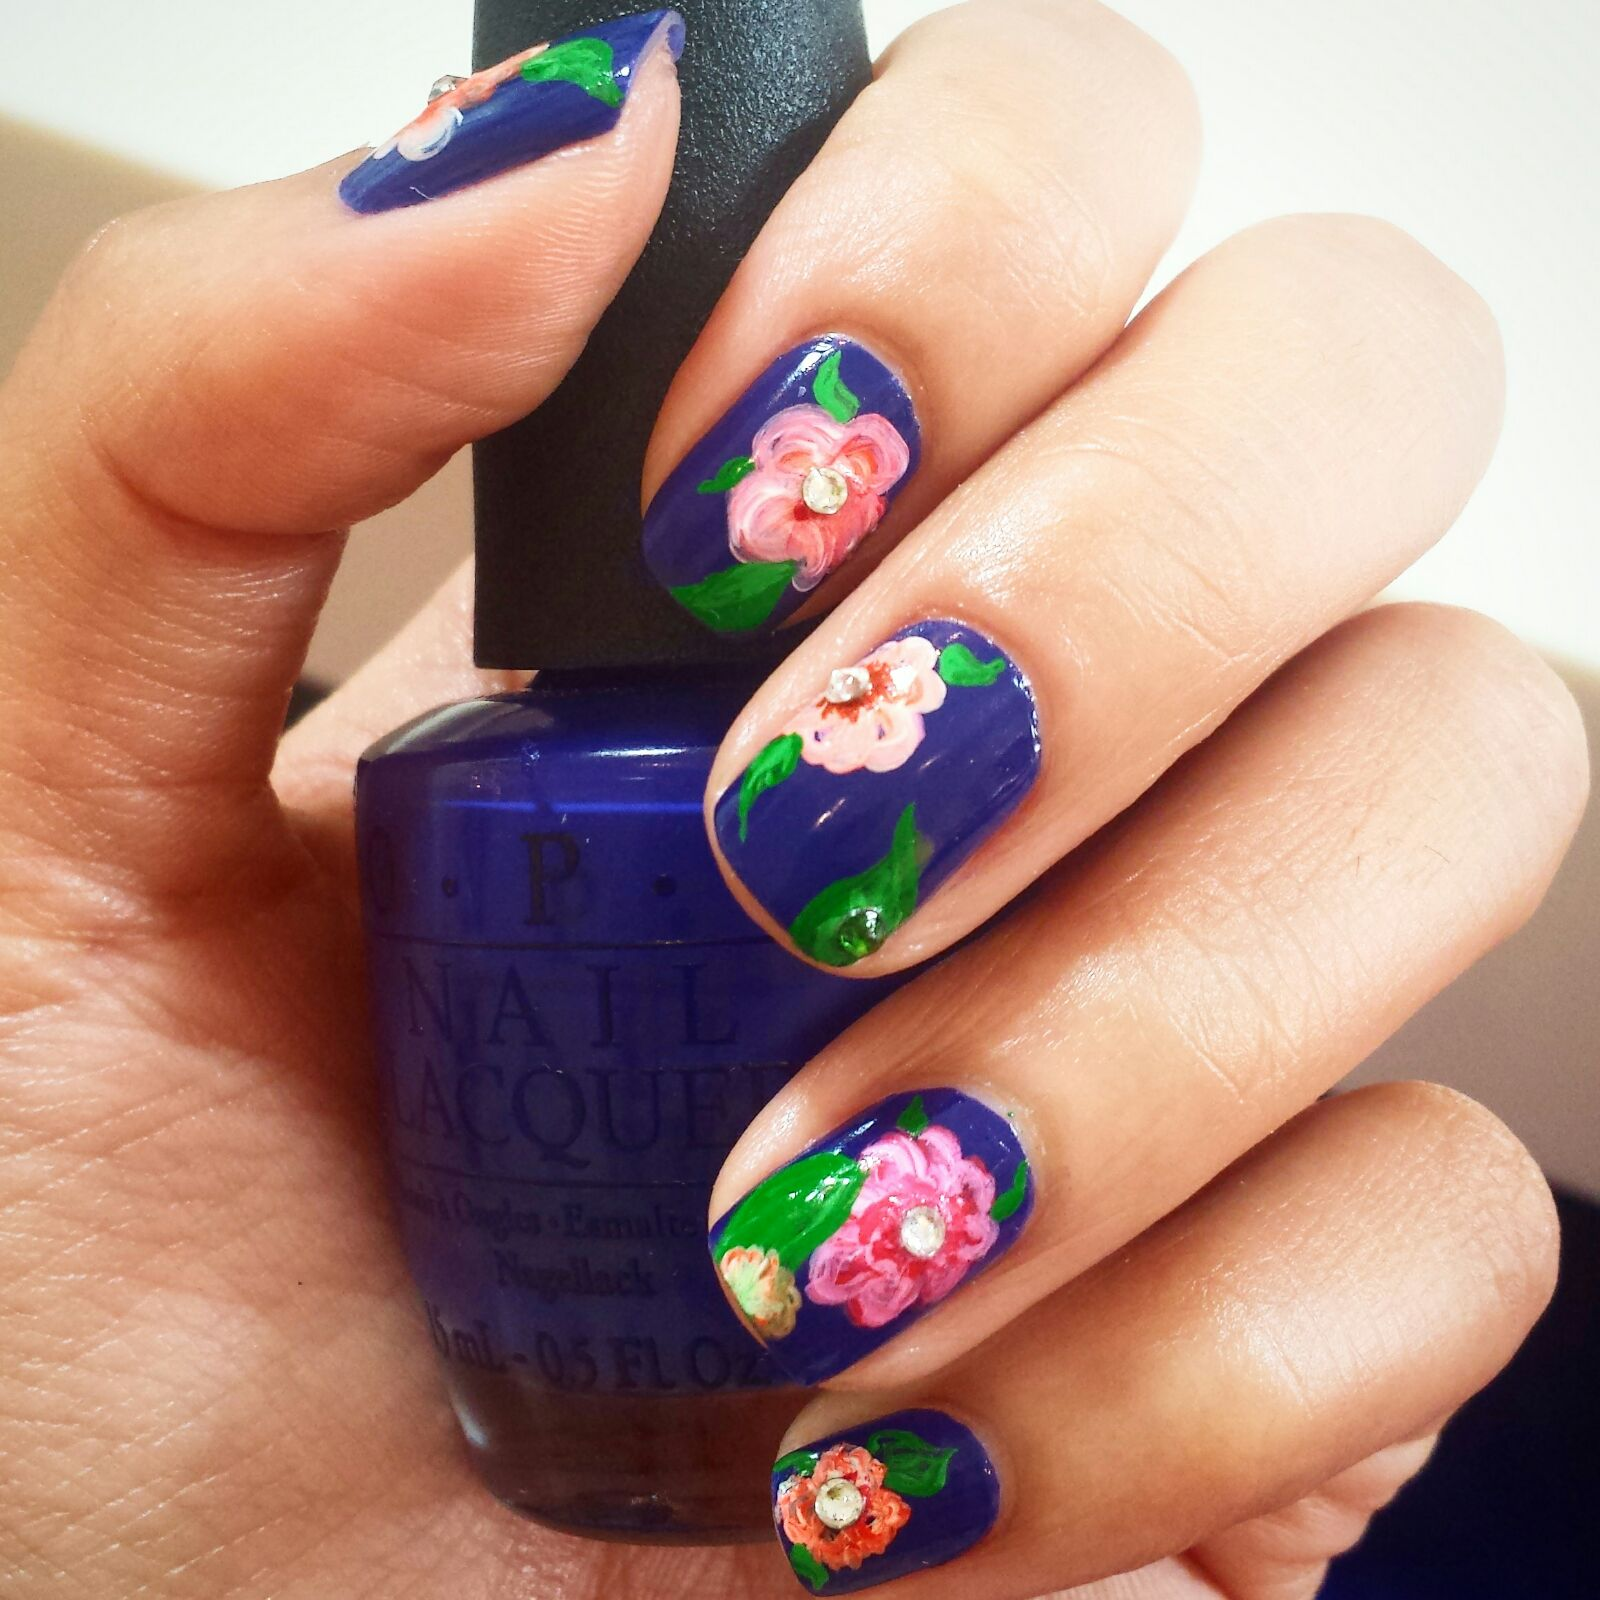 THE BEST SALONS FOR NAIL ART IN DUBAI